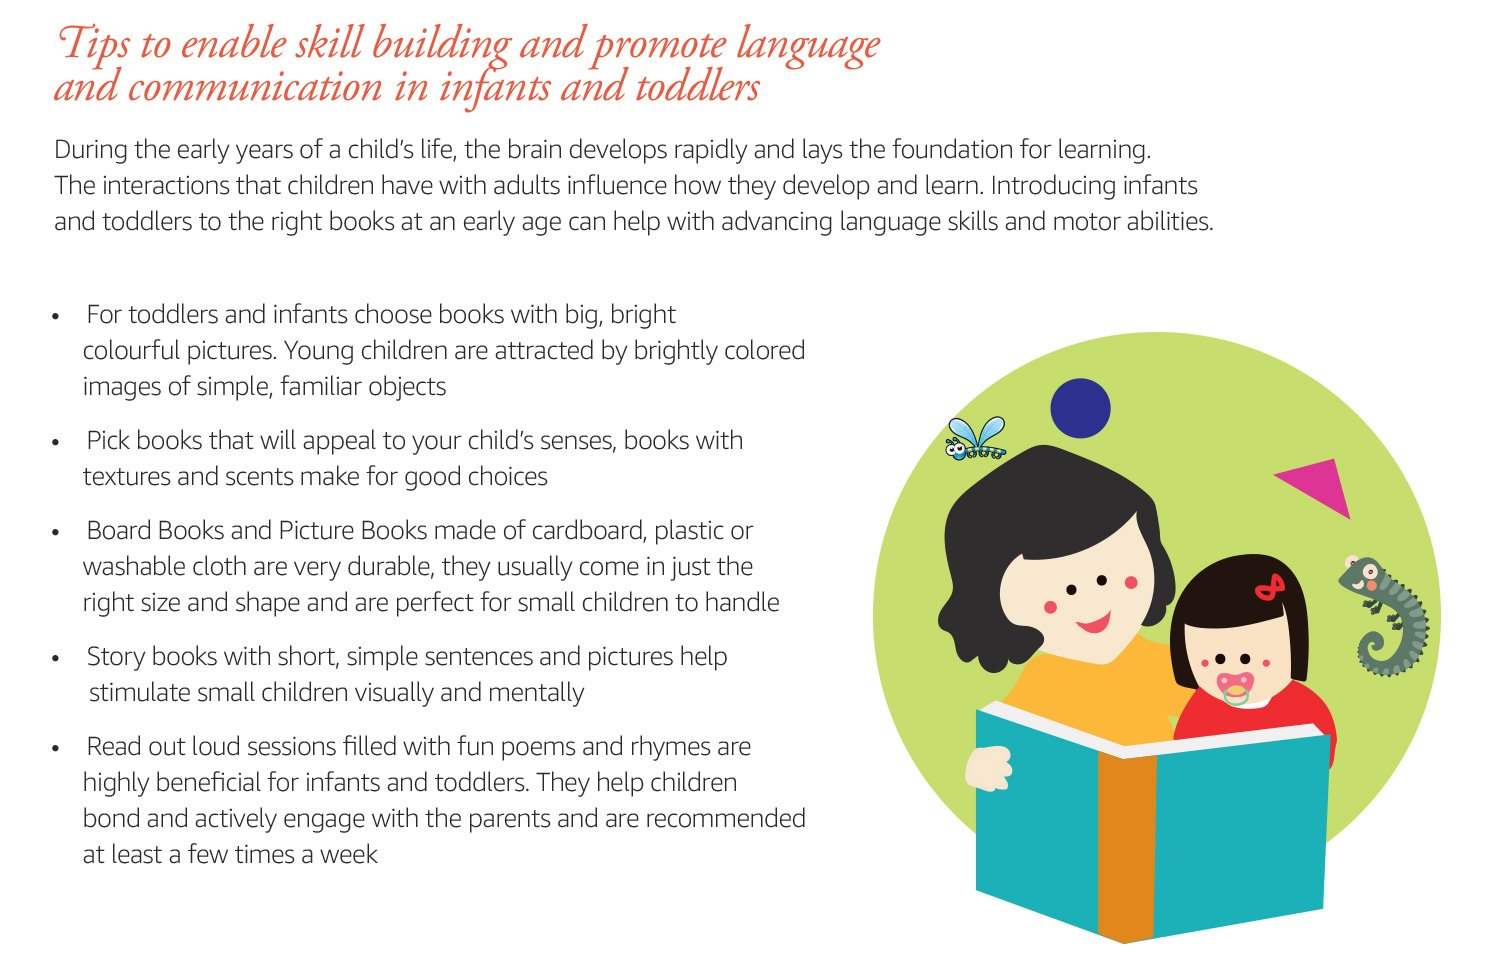 Skills to foster in infants and toddlers